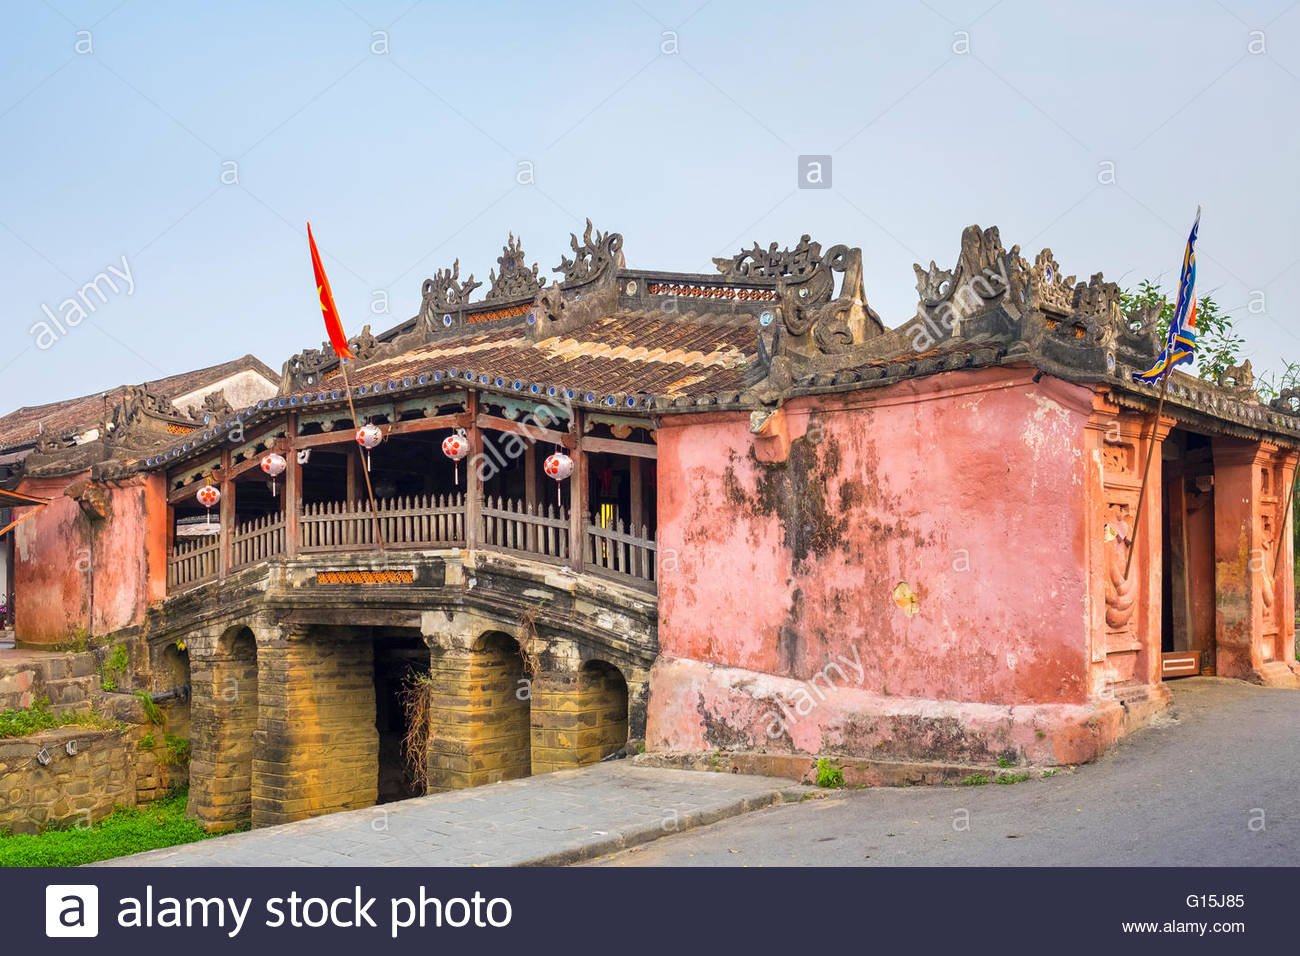 Japanese Covered Bridge (Chua cau), Hoi An Ancient Town, UNESCO World Heritage Site, Quang Nam Province, Vietnam, - Stock Image